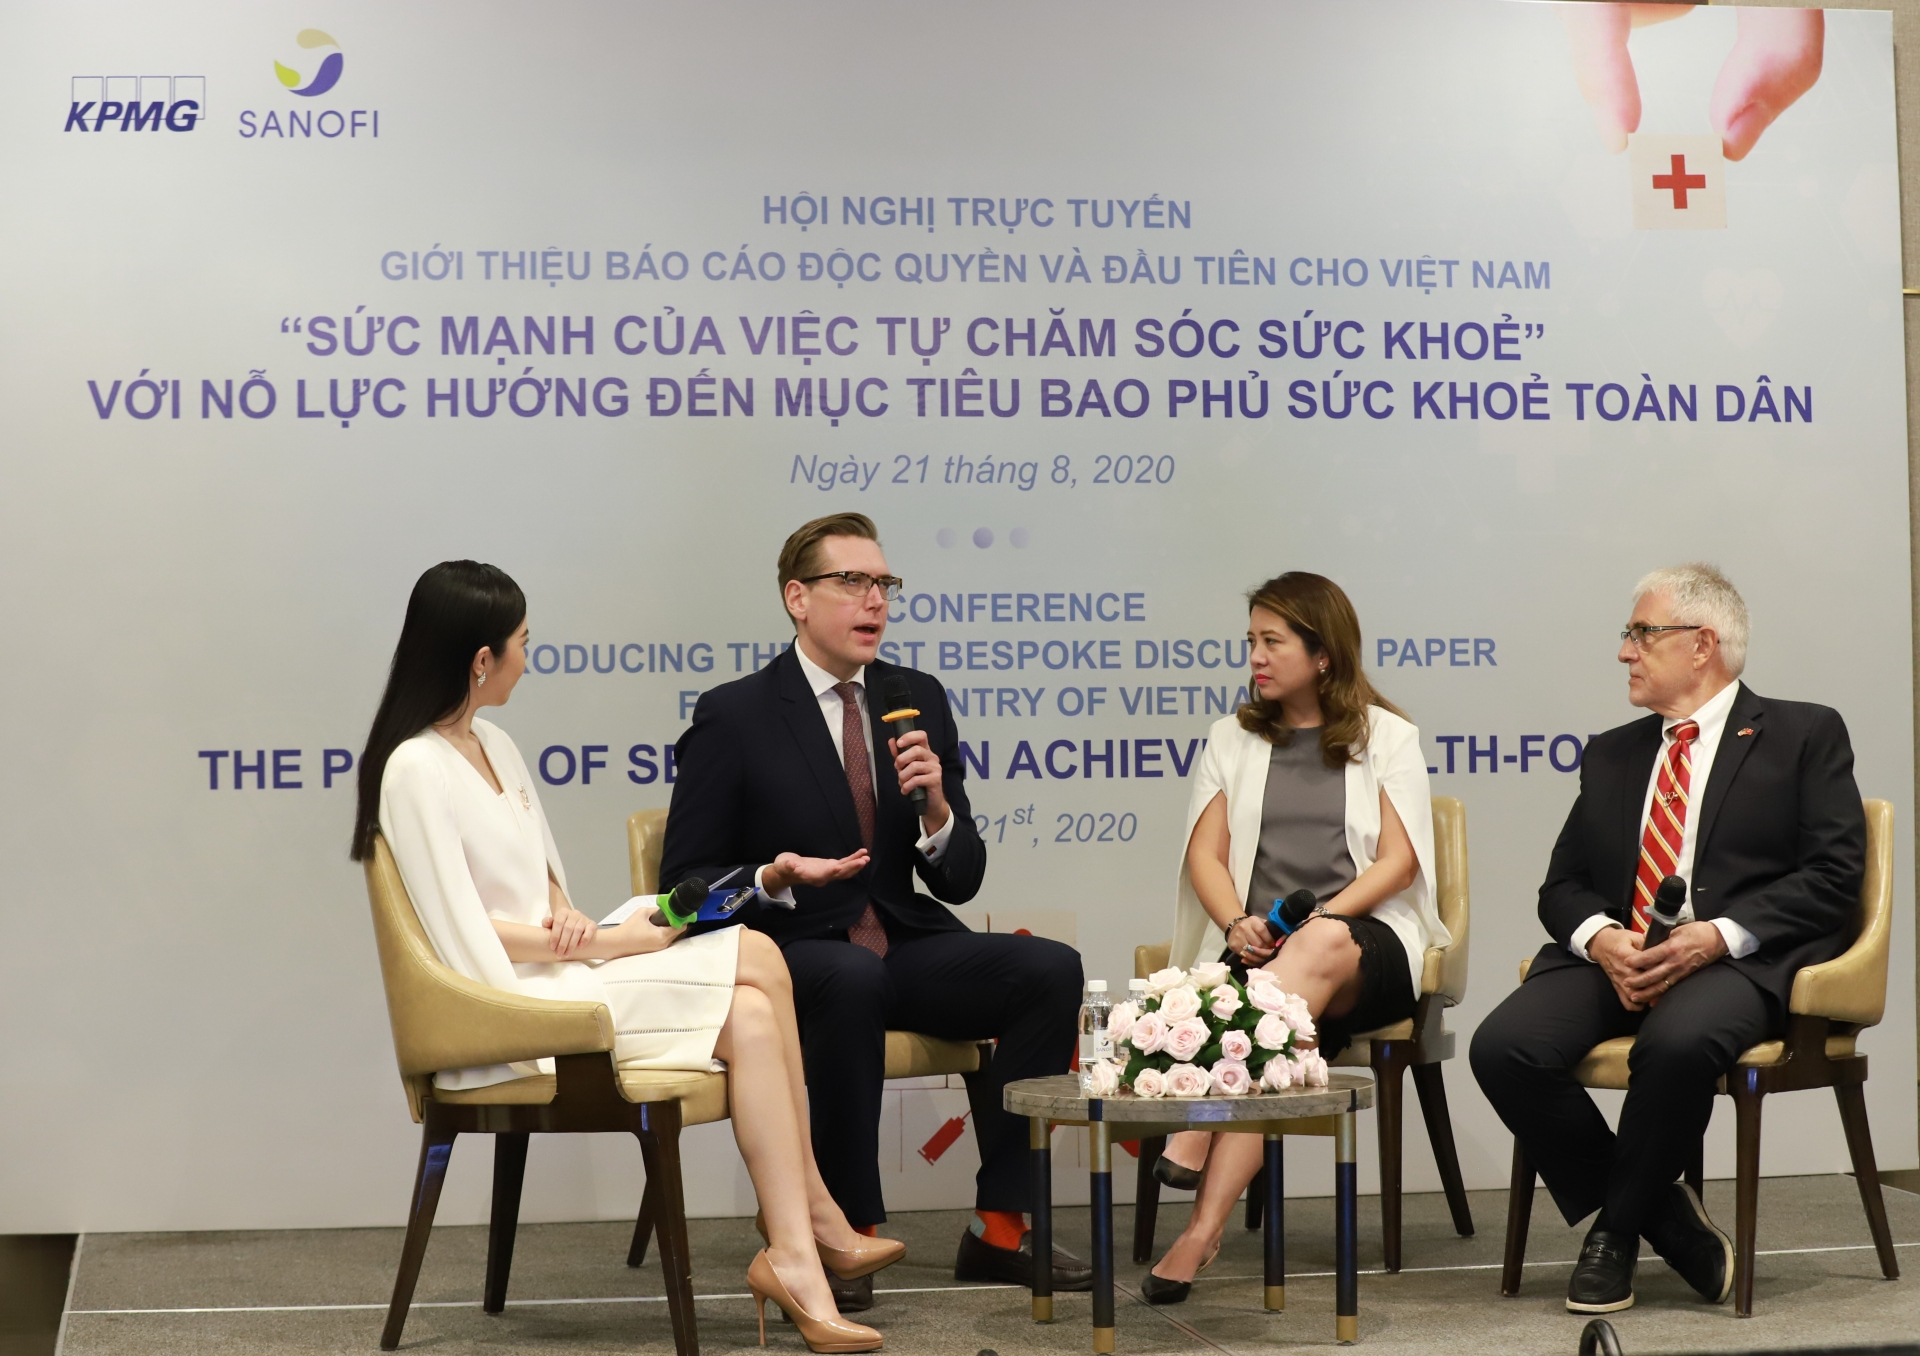 KPMG and Sanofi release frst bespoke discussion paper on self-care in Vietnam